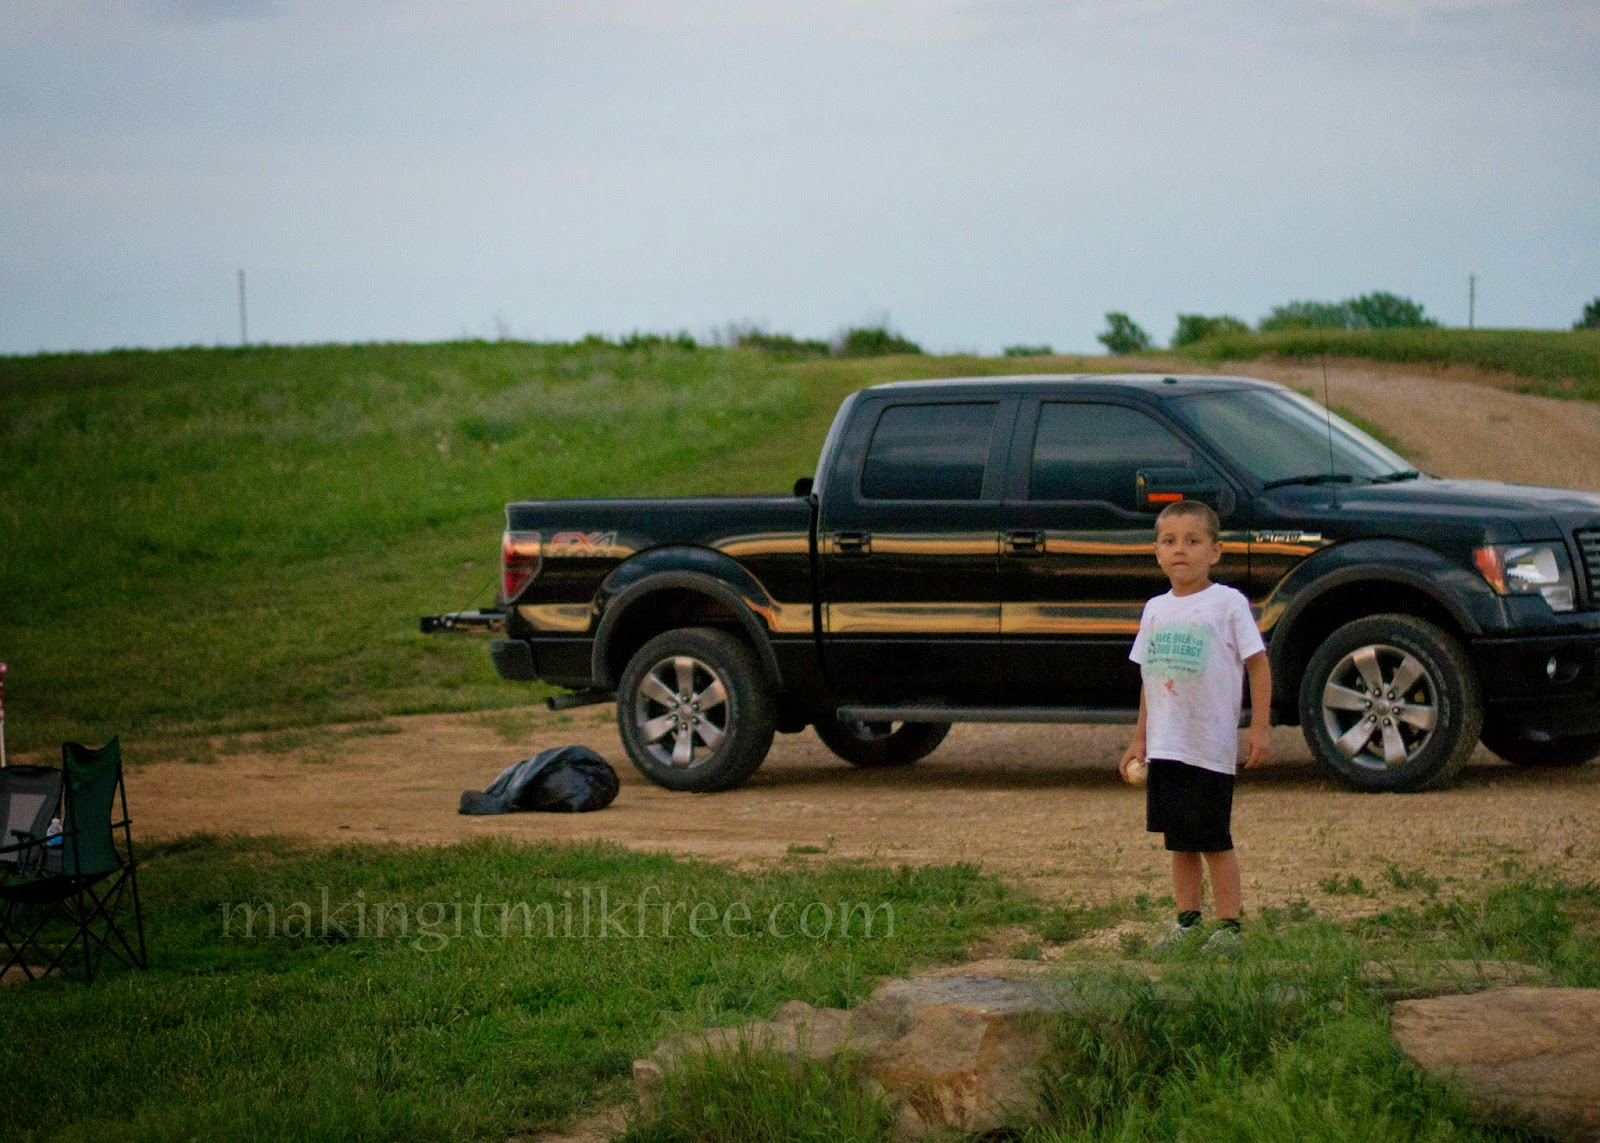 #camping #fishing #sunset #kansas #kids